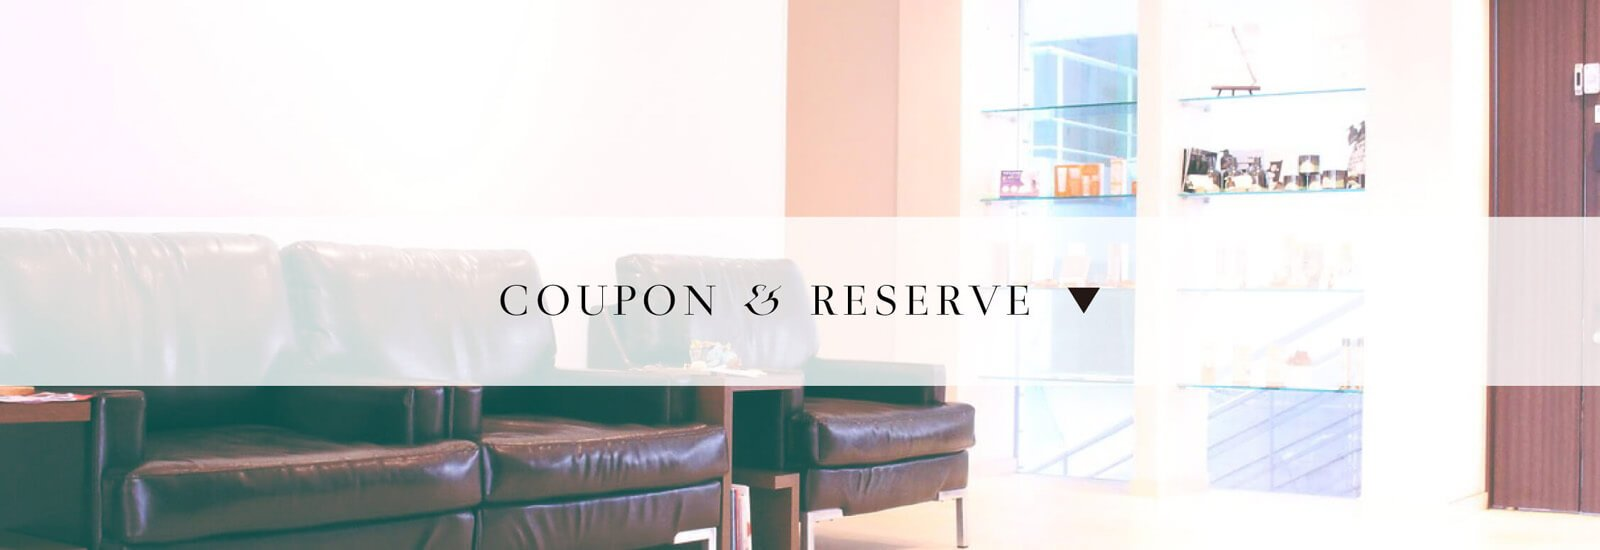 COUPON & RESERVE